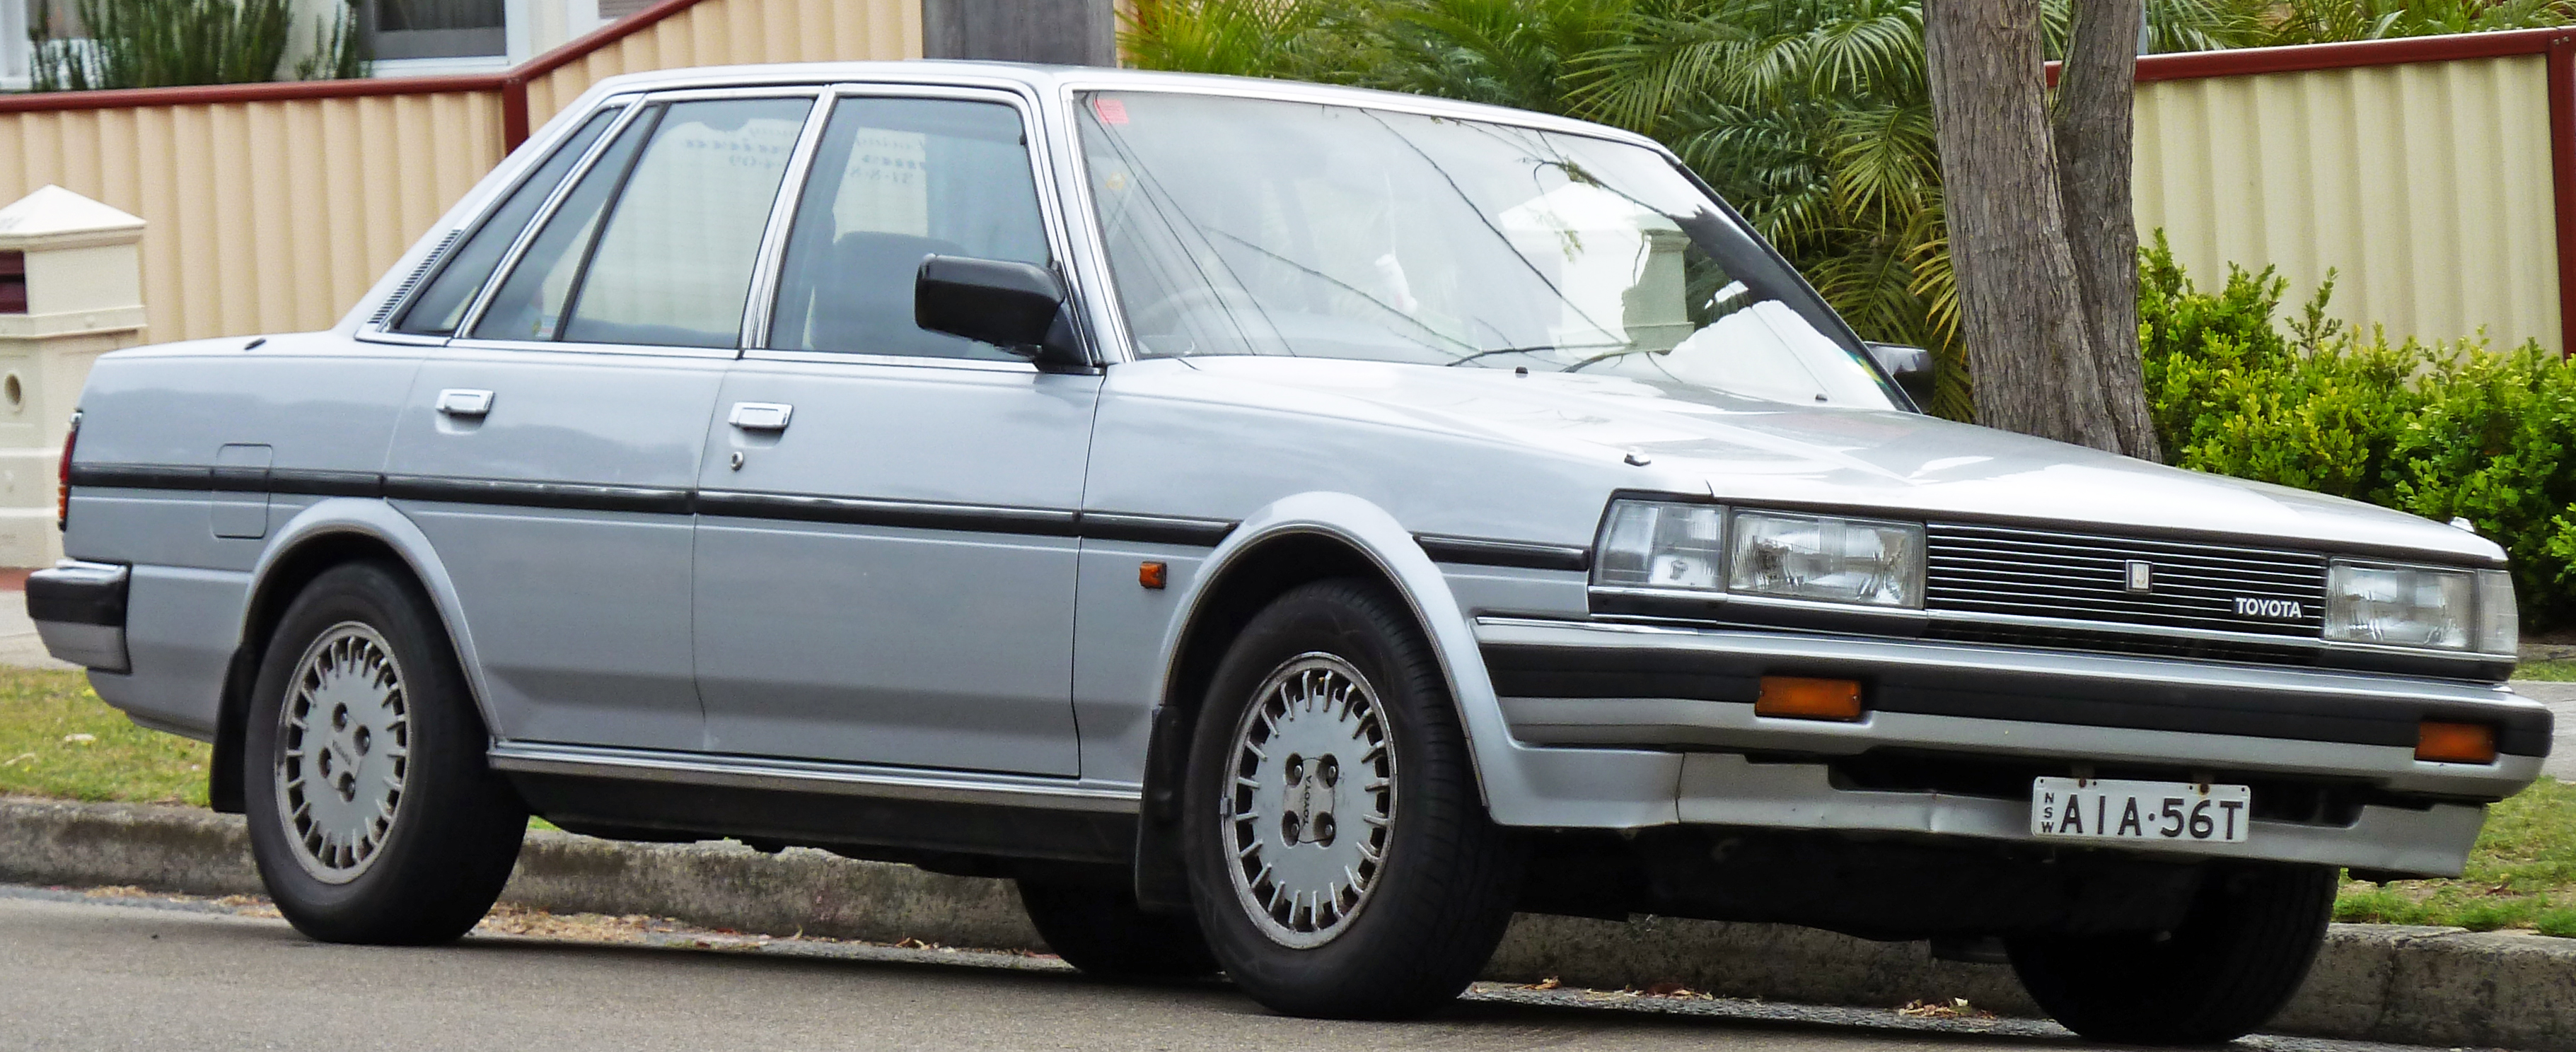 File:1985 Toyota Cressida (MX73) GLX-i sedan (2010-09